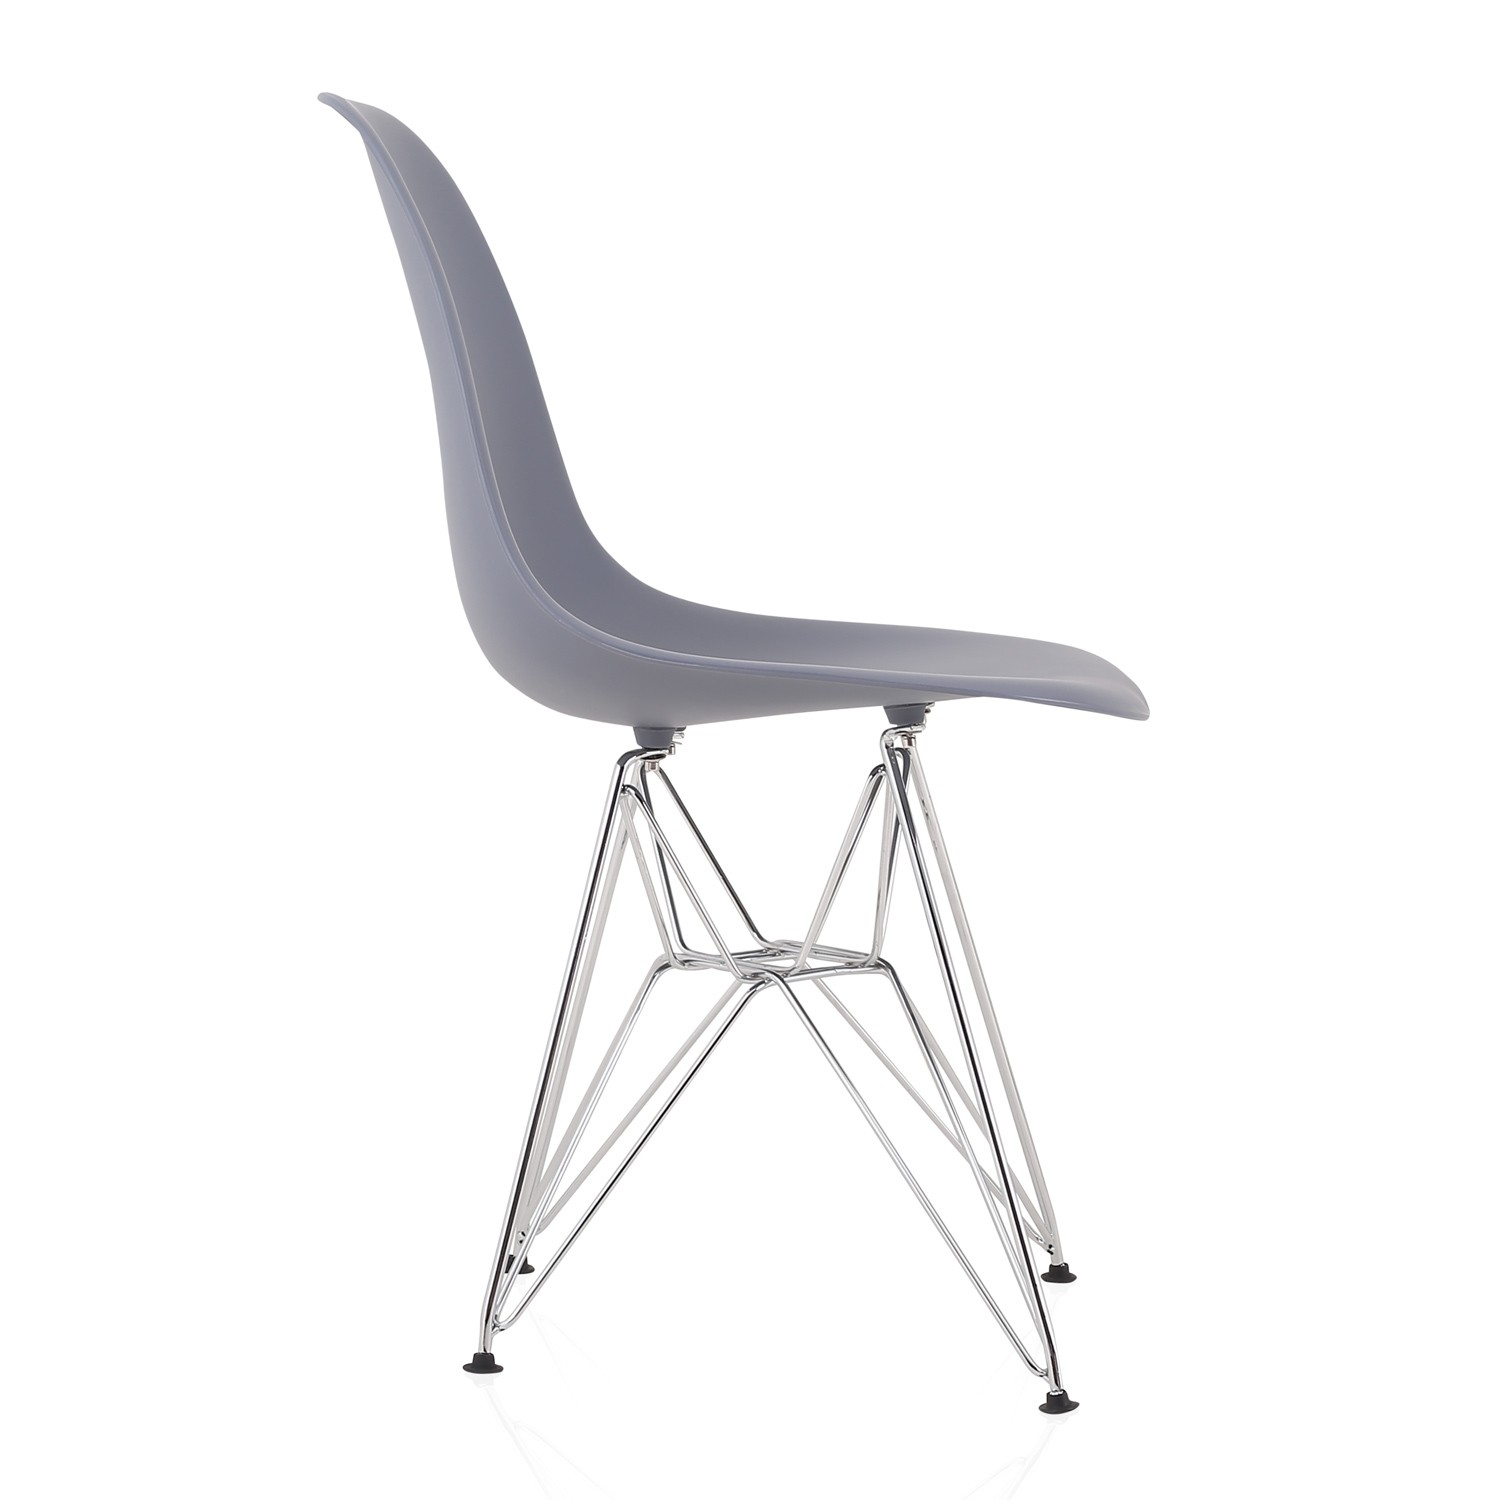 plastic chairs with steel legs swing chair desk eames style dsr molded dark gray dining shell